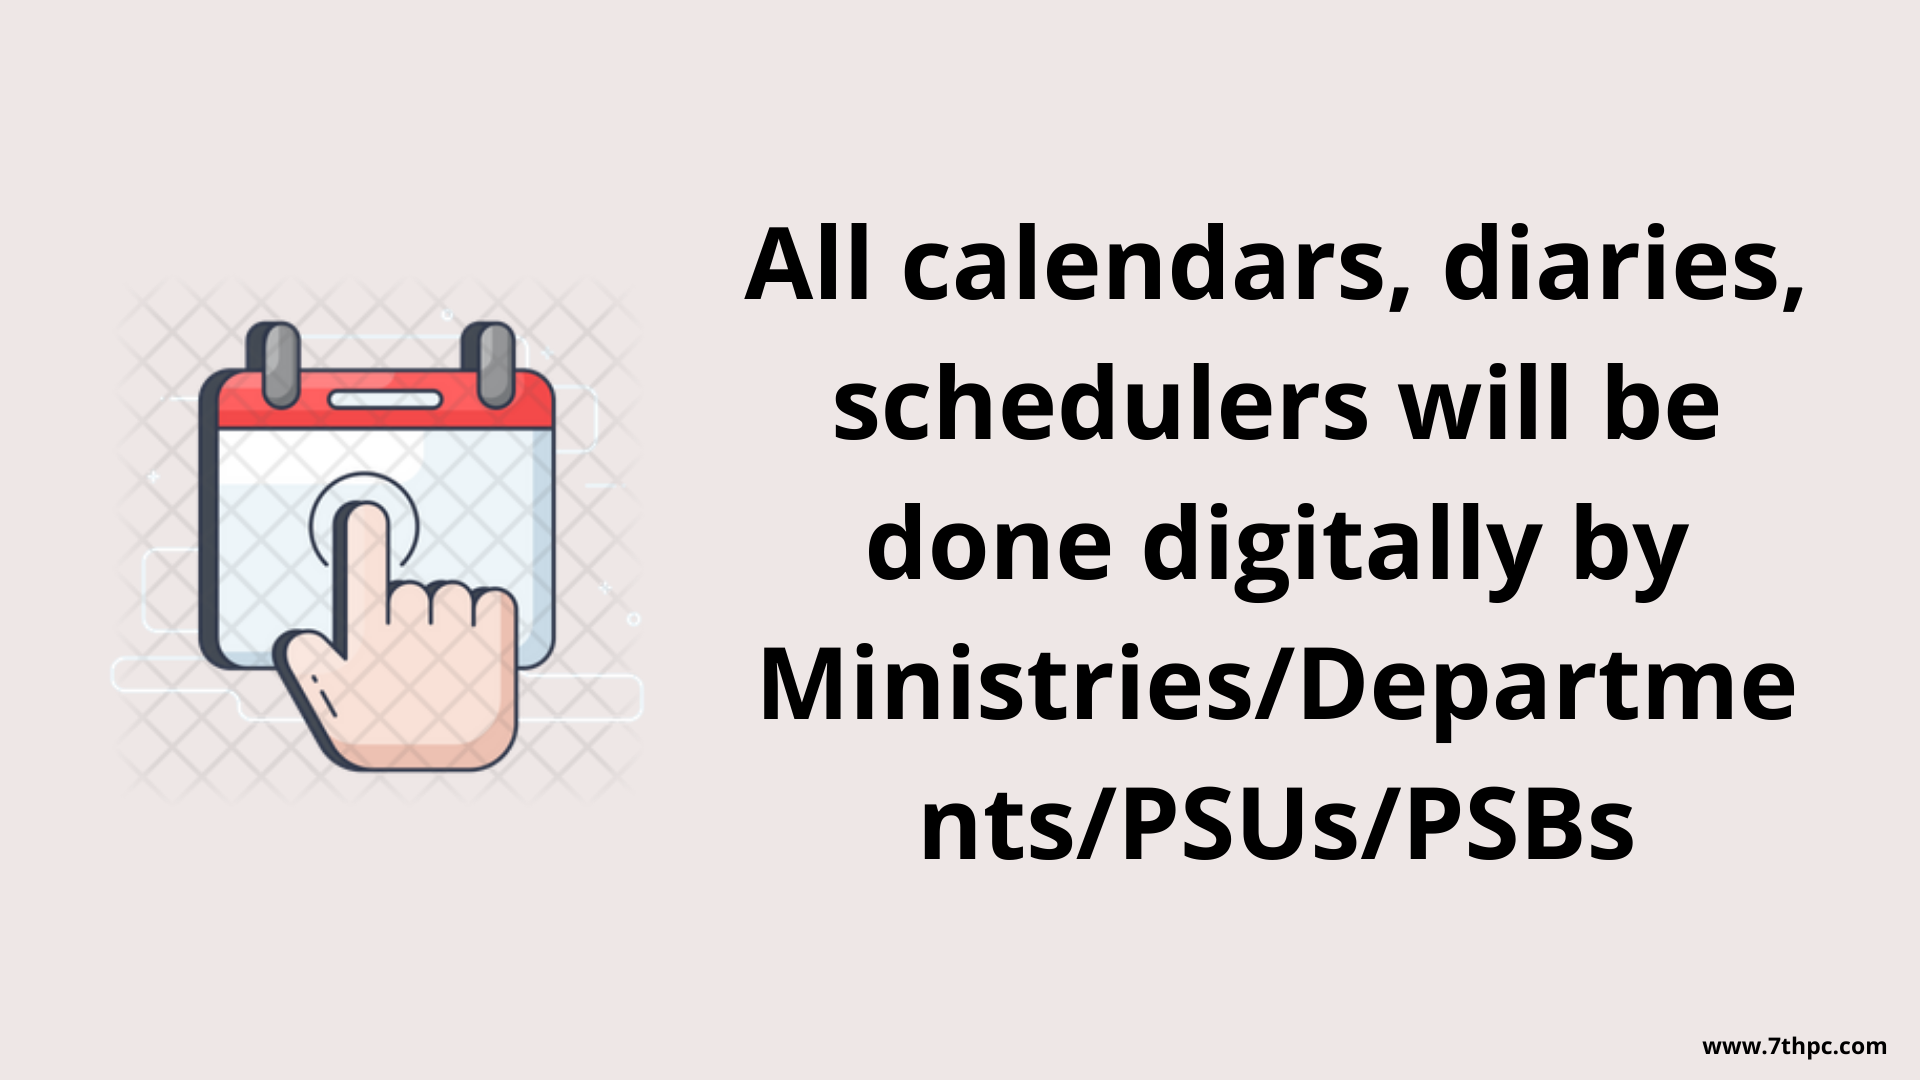 All calendars, diaries, schedulers will be done digitally by Ministries/Departments/PSUs/PSBs